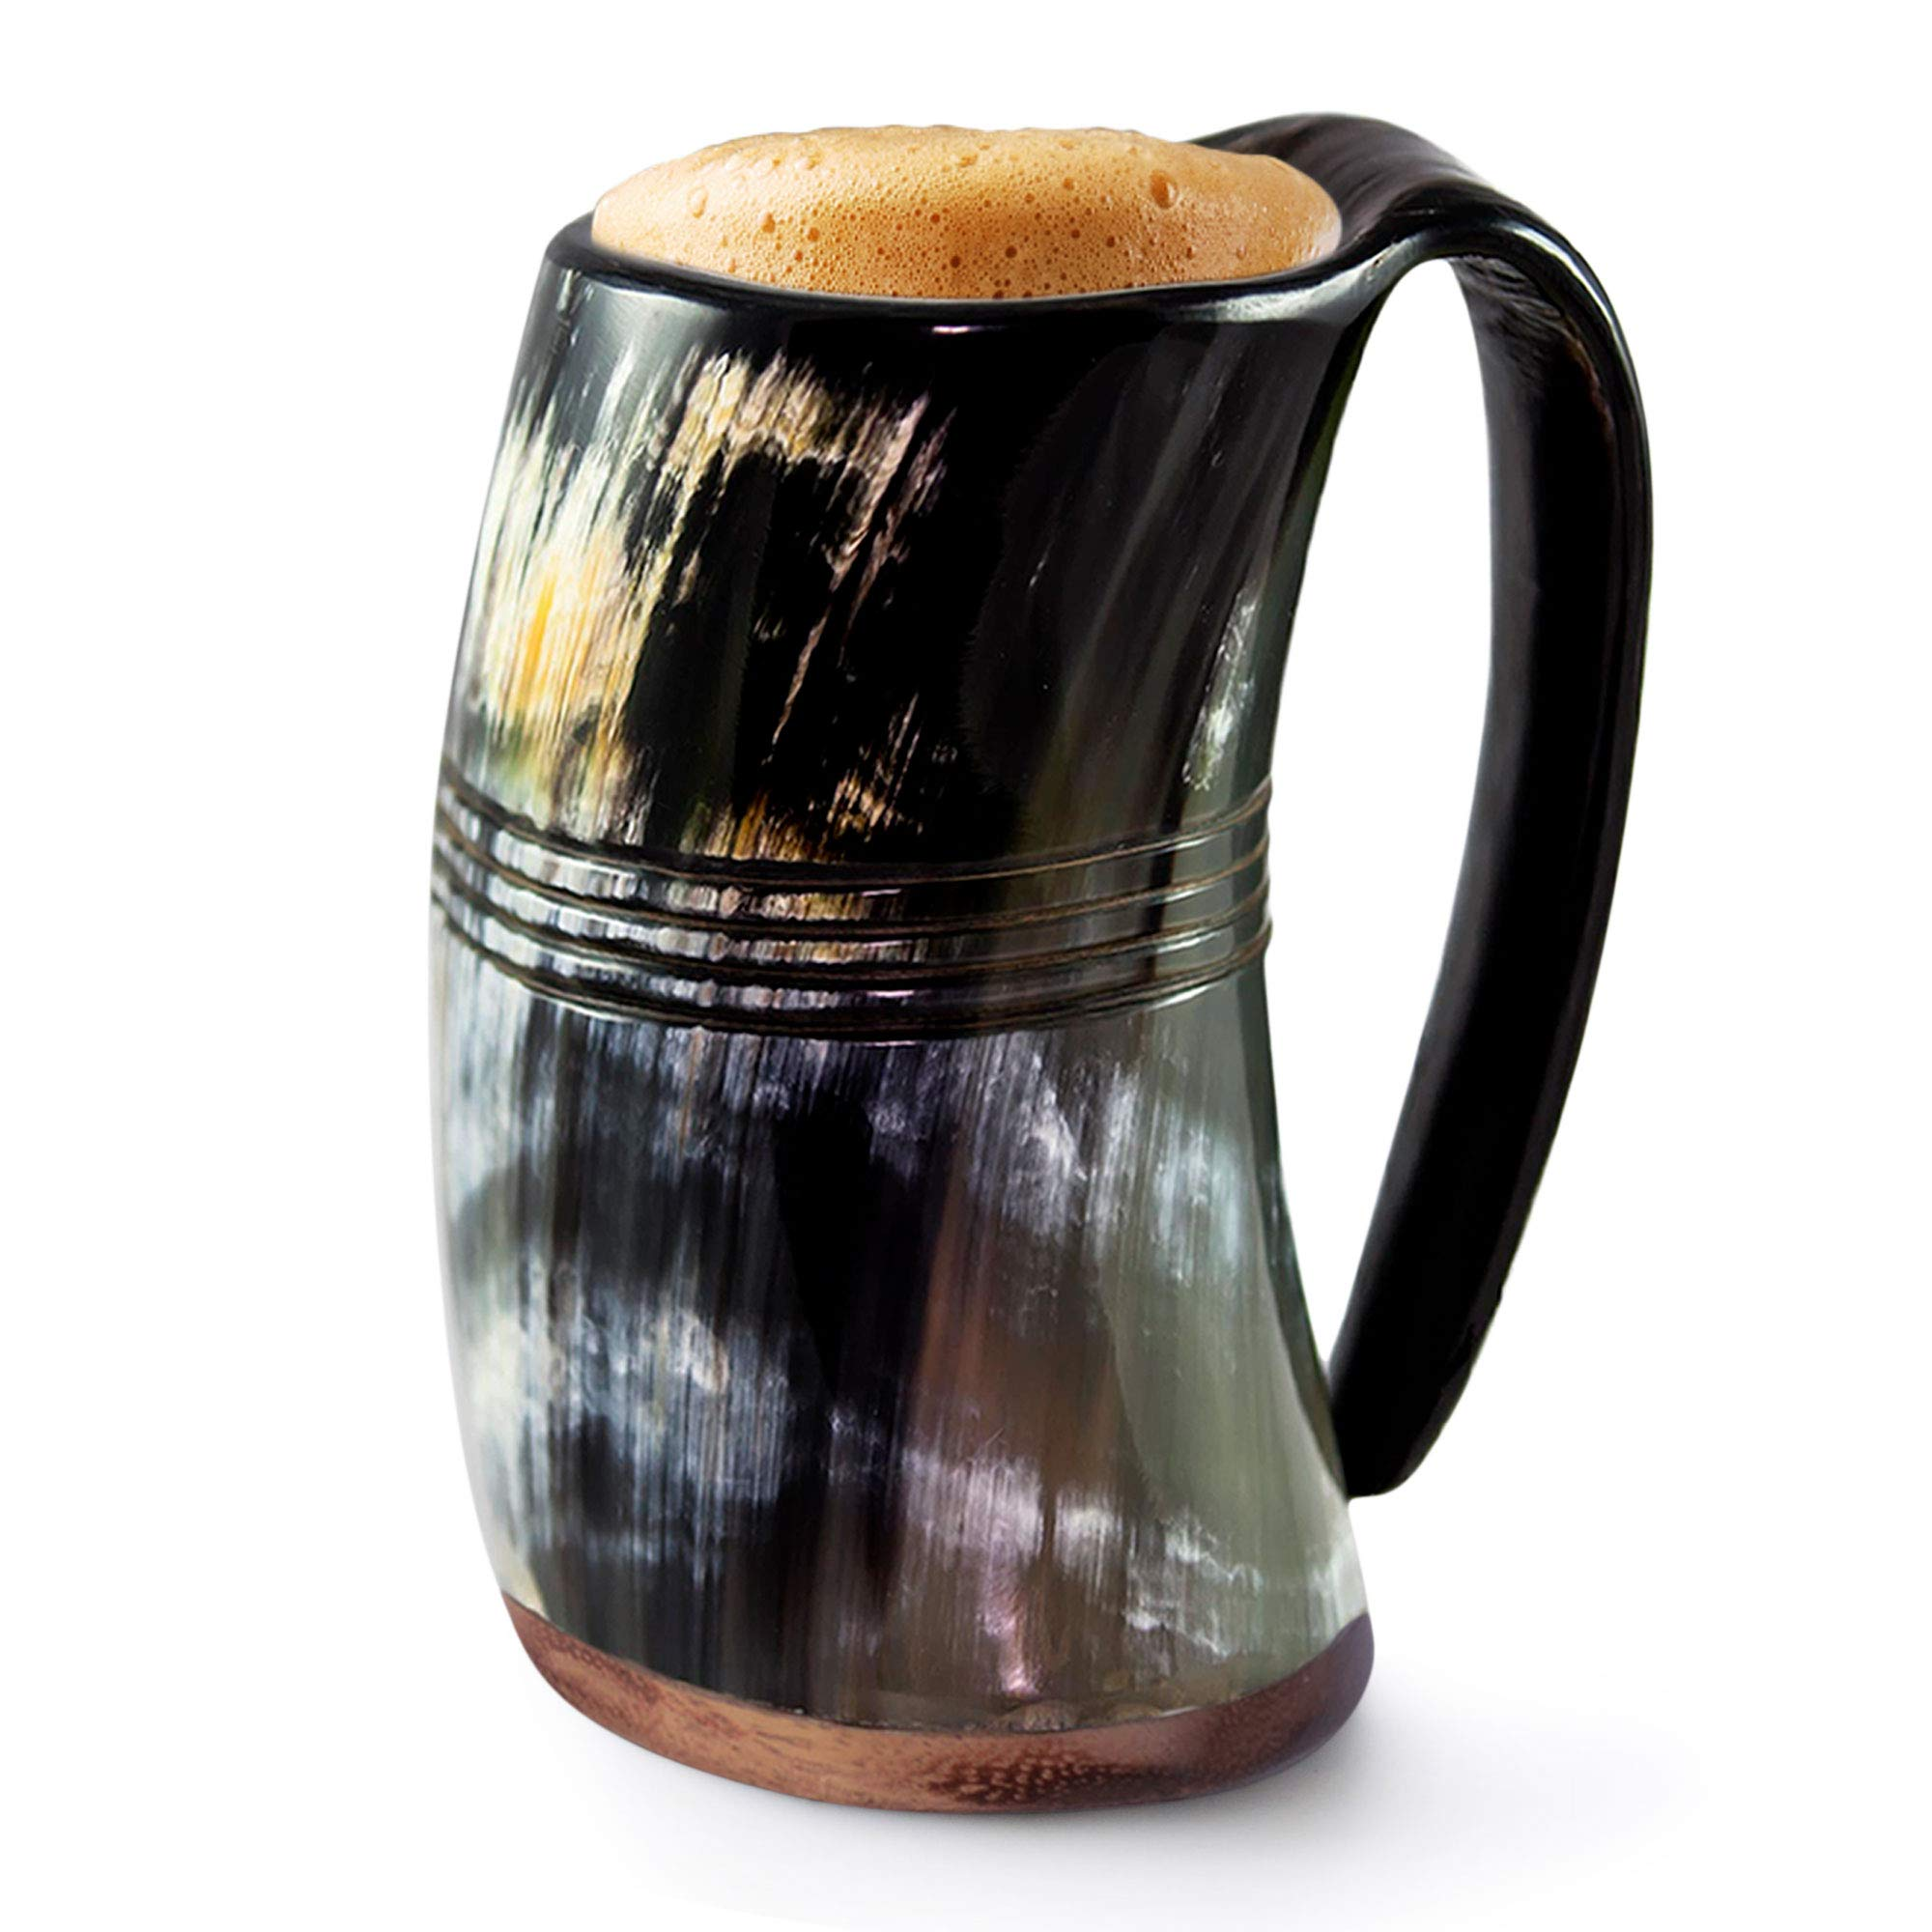 Norse Tradesman Genuine Viking Drinking Horn Mug - 100% Authentic Beer Horn Tankard w/Rosewood Bottom and Ring Engravings |''The Eternal'', Polished, X-Large